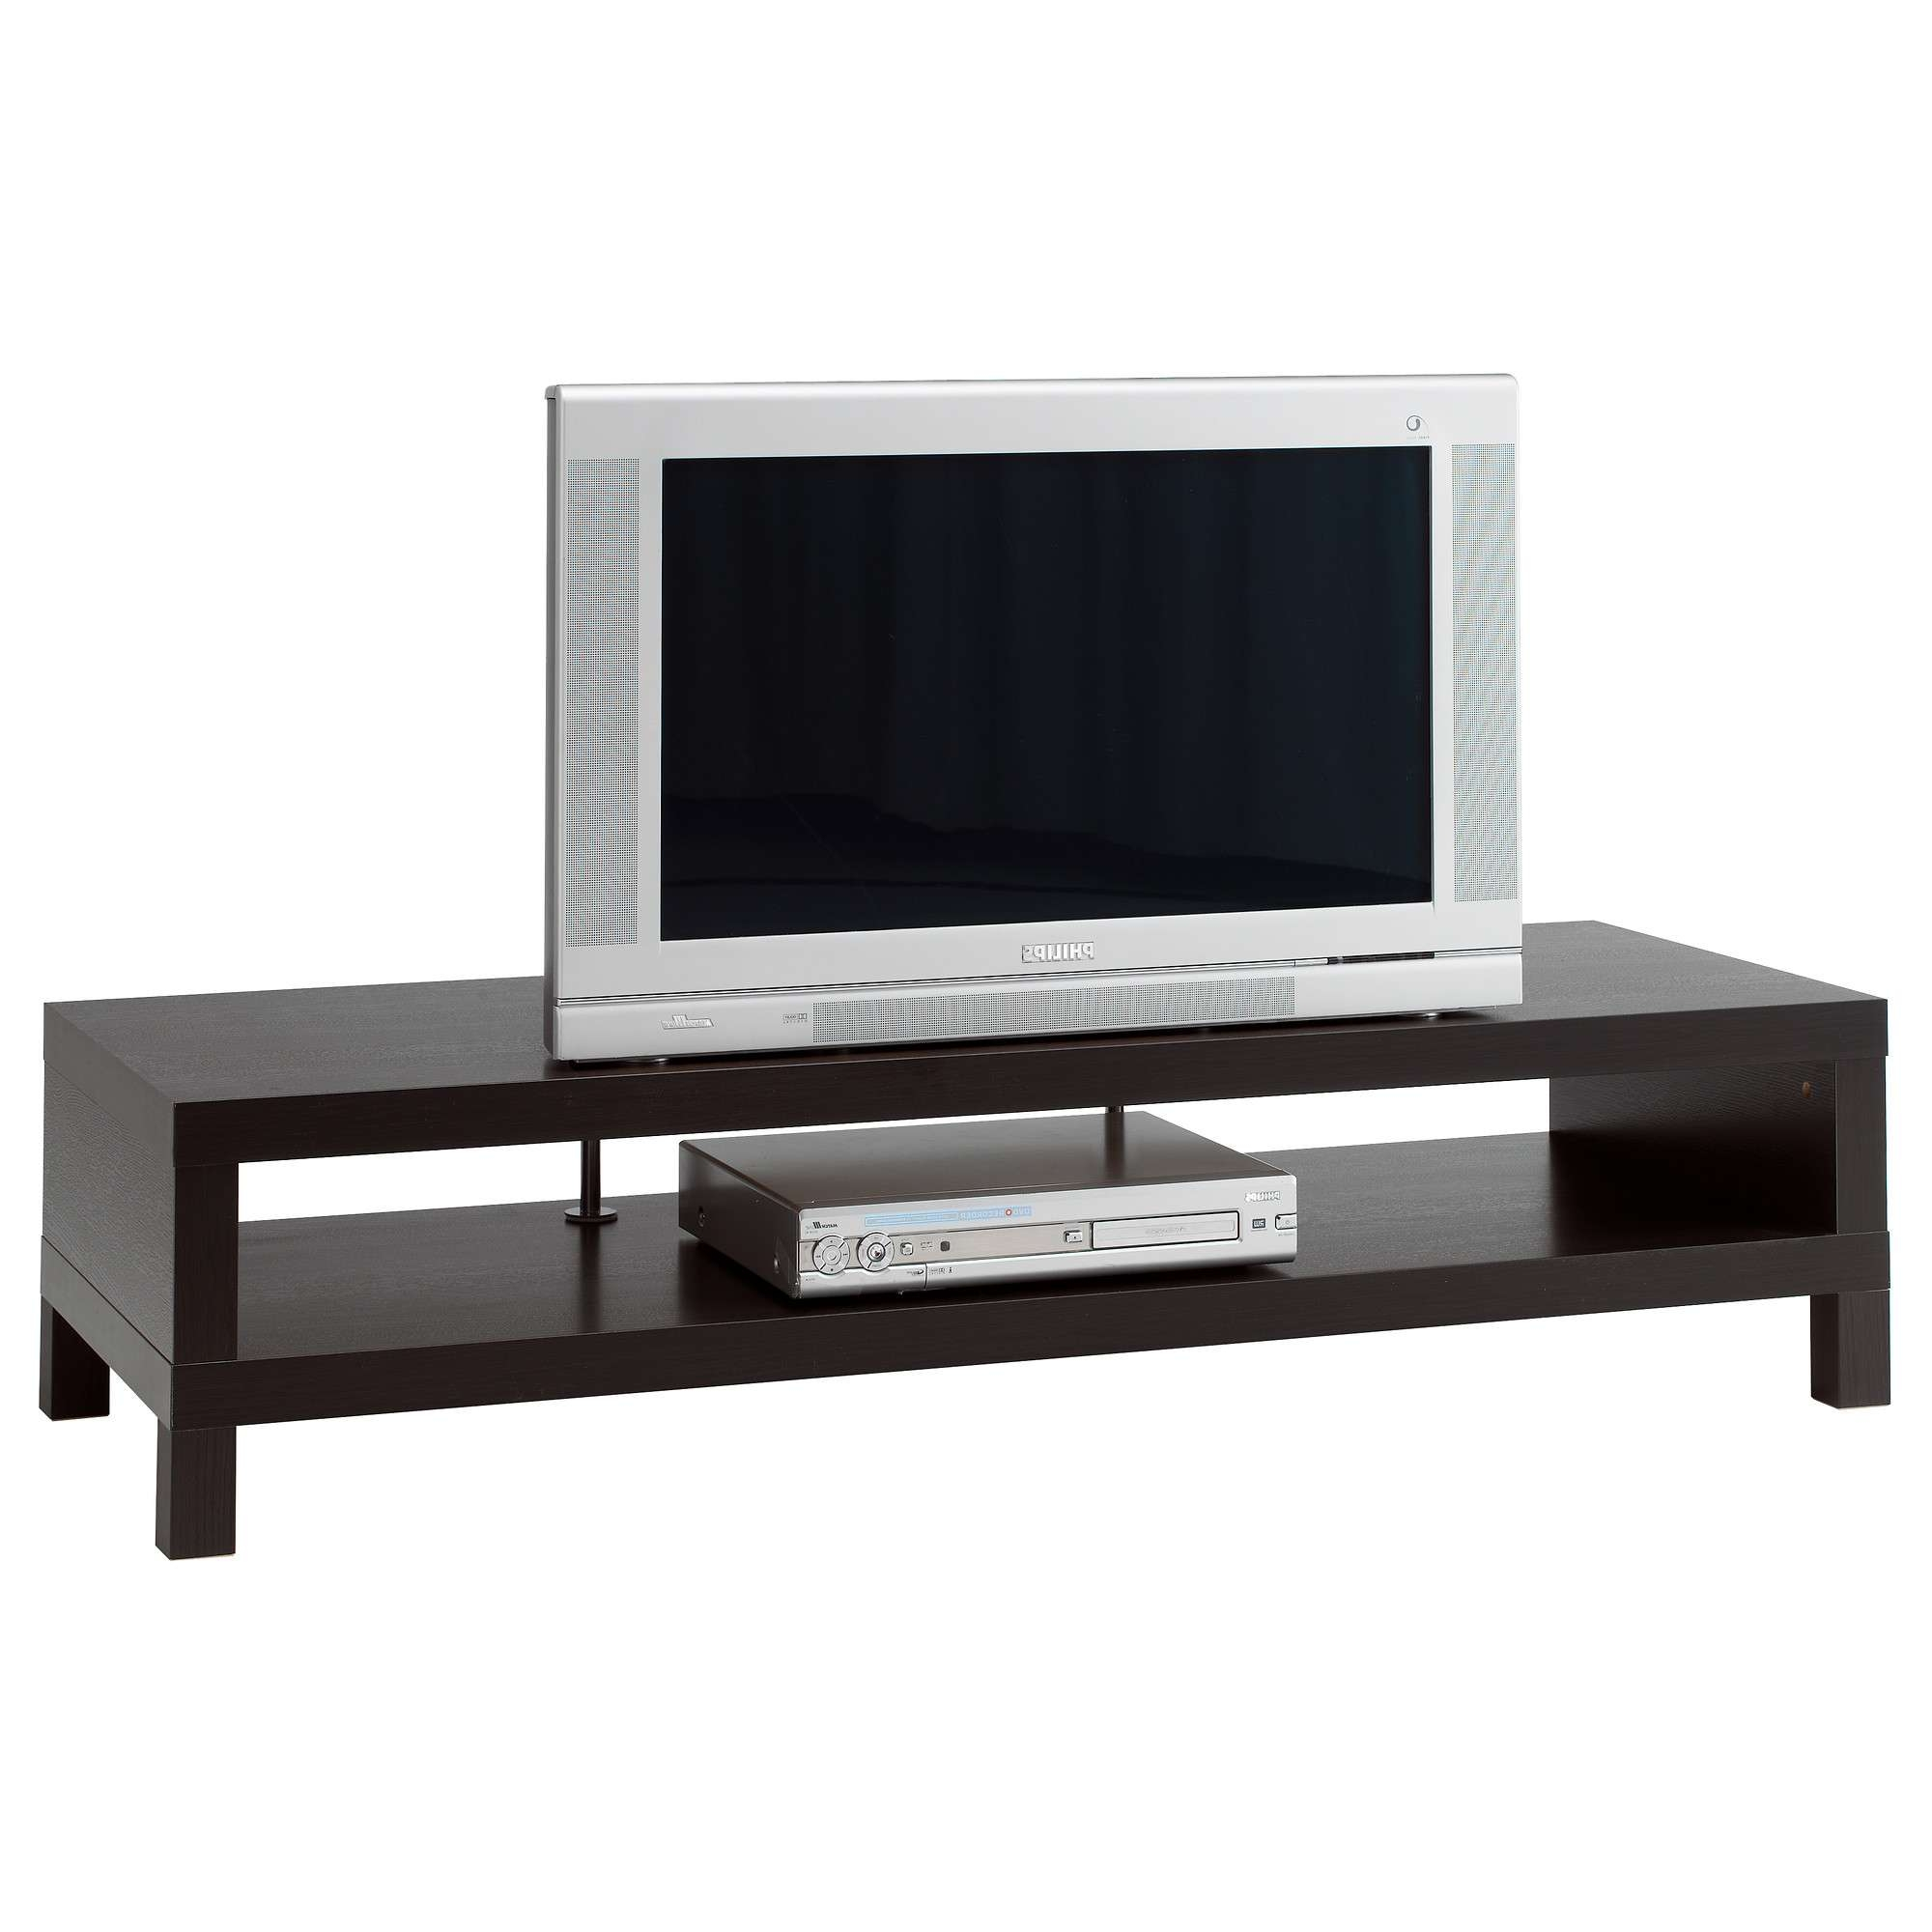 Lack Tv Bench Black Brown 149X55 Cm – Ikea With Regard To Bench Tv Stands (View 8 of 15)